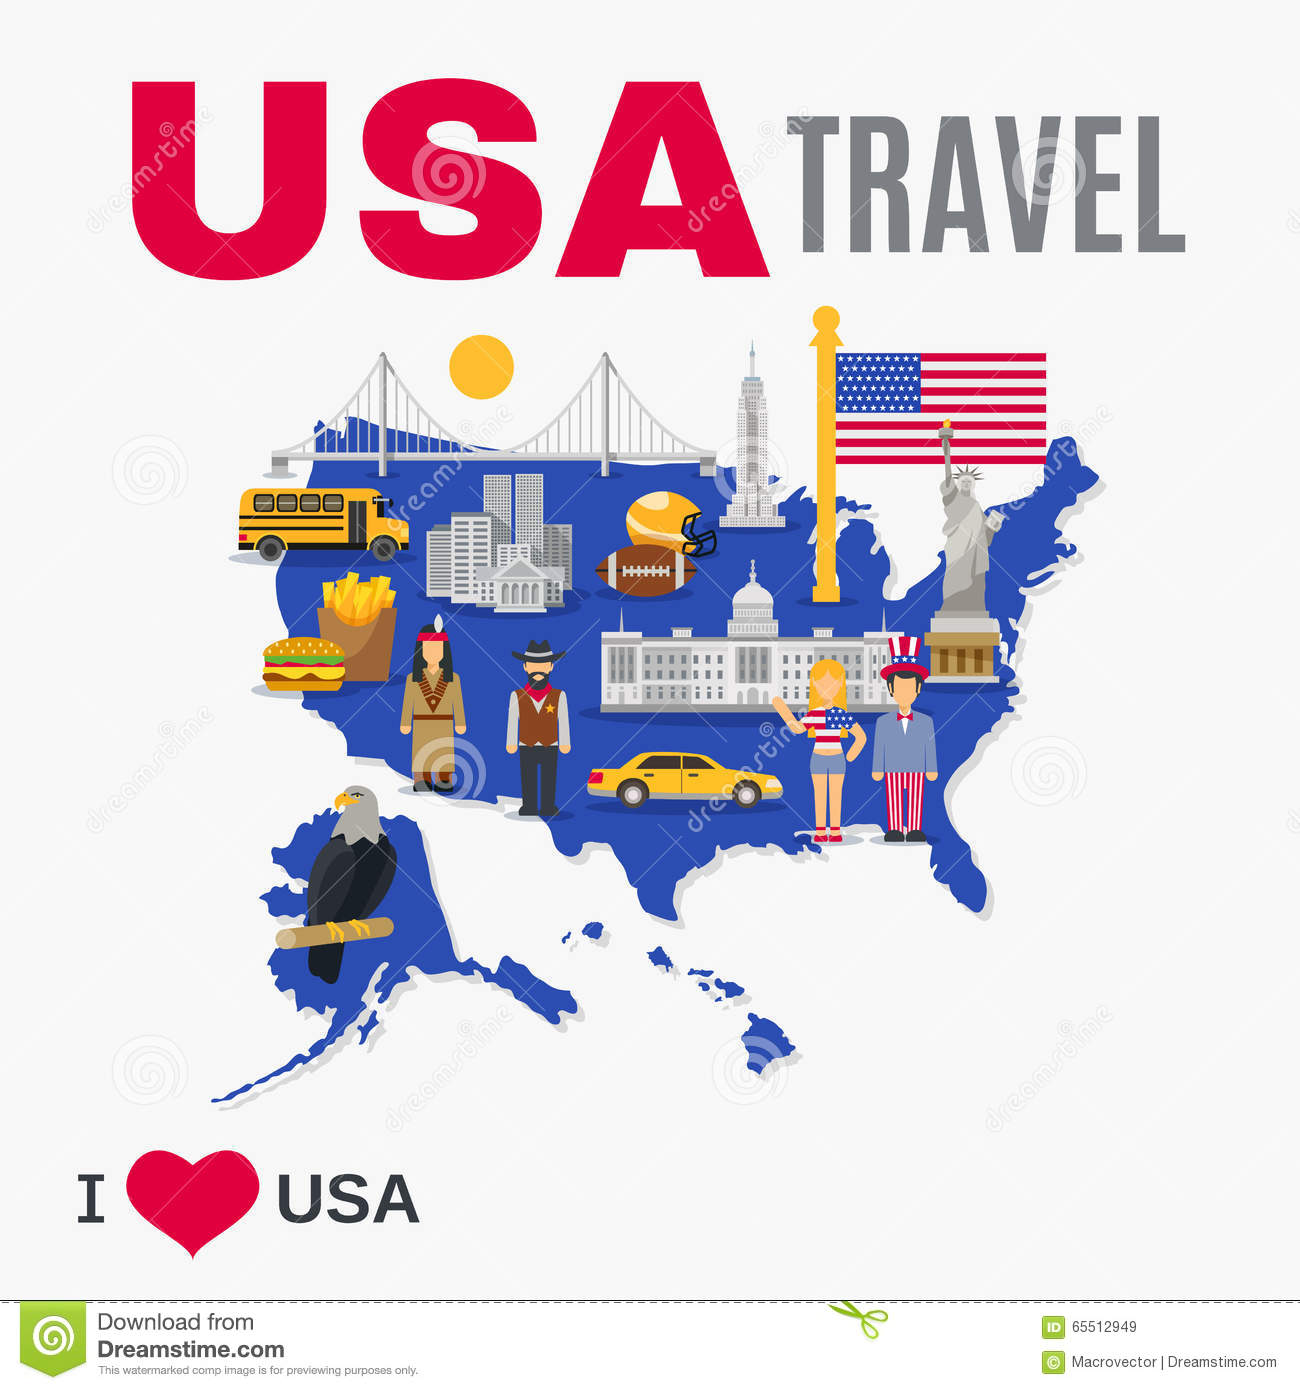 World travel agency usa culture flat poster stock vector for Design agency usa